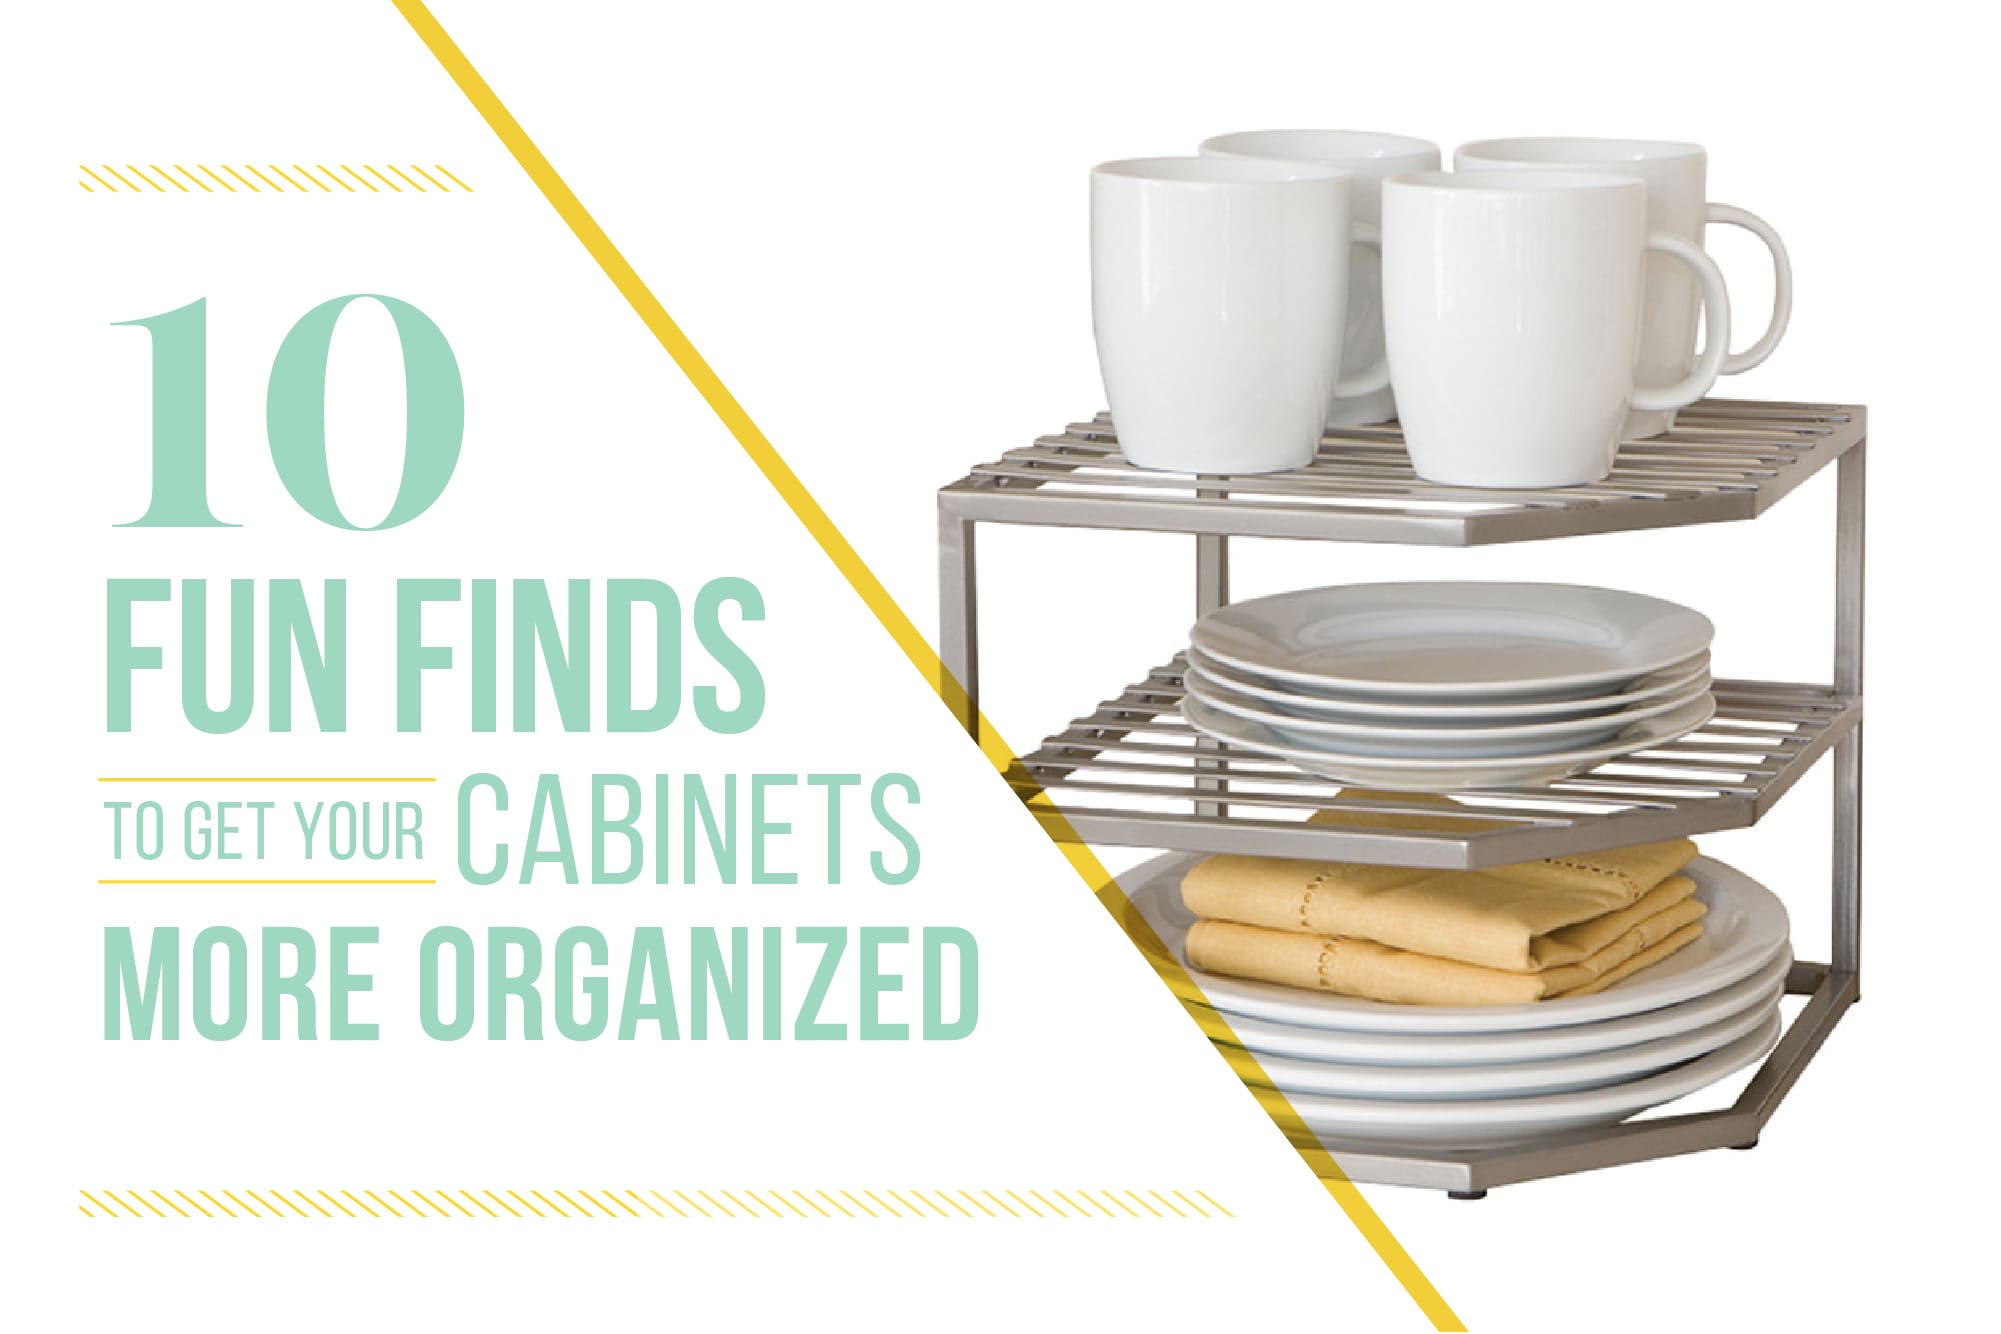 10 Fun Finds to Get Your Cabinets More Organized: gallery image 1